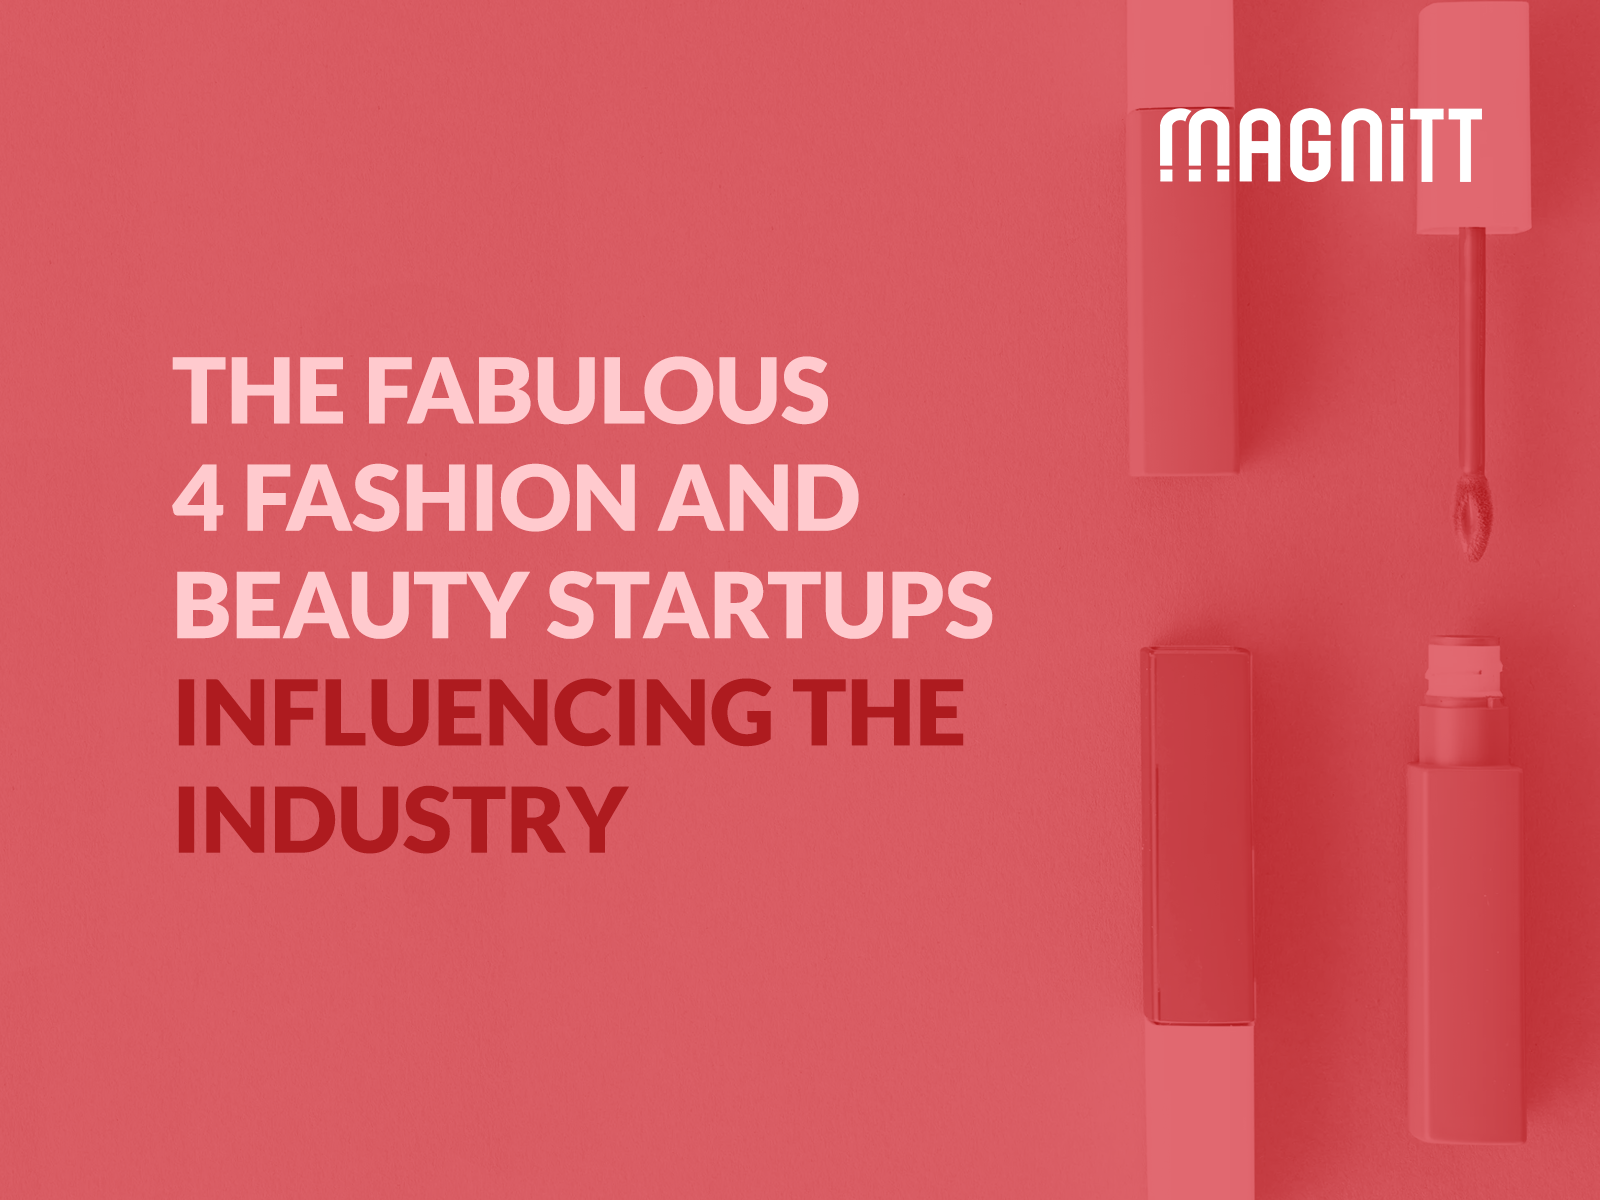 The fabulous 4 Fashion and Beauty startups influencing the industry